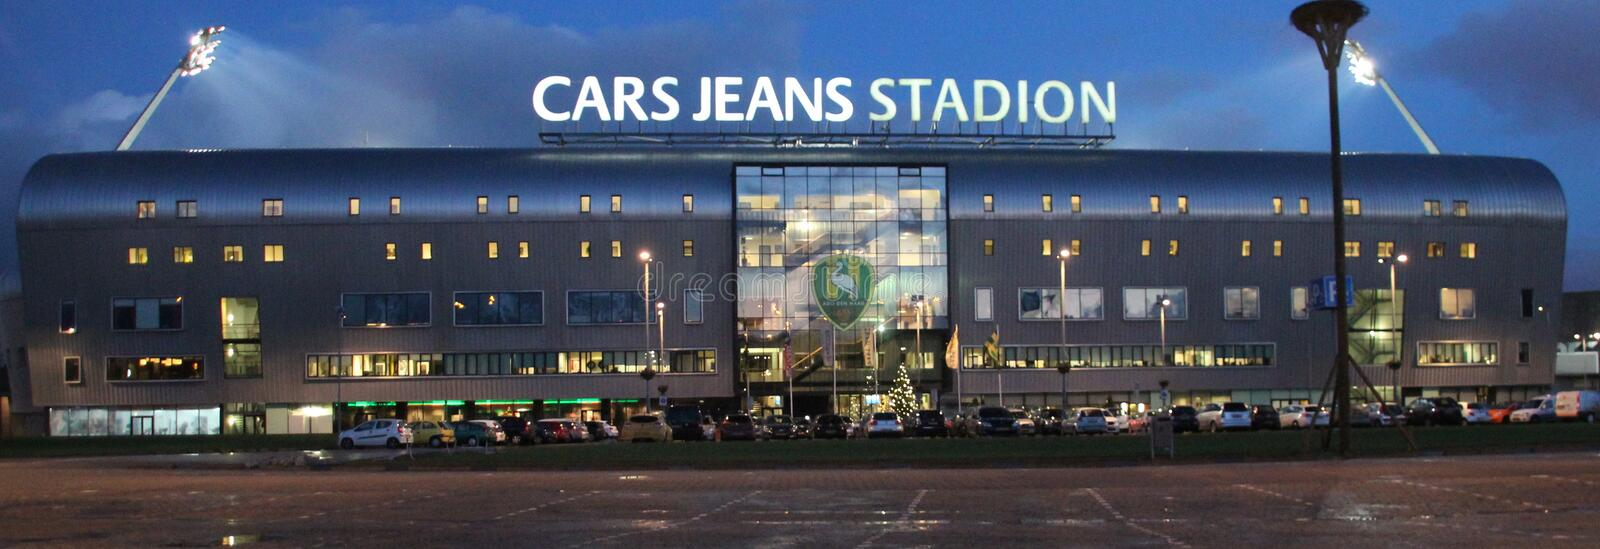 Football stadium Cars Jeans in the Hague, home of ADO Den Haag which plays in the Dutch Eredivisie with lights on stock image